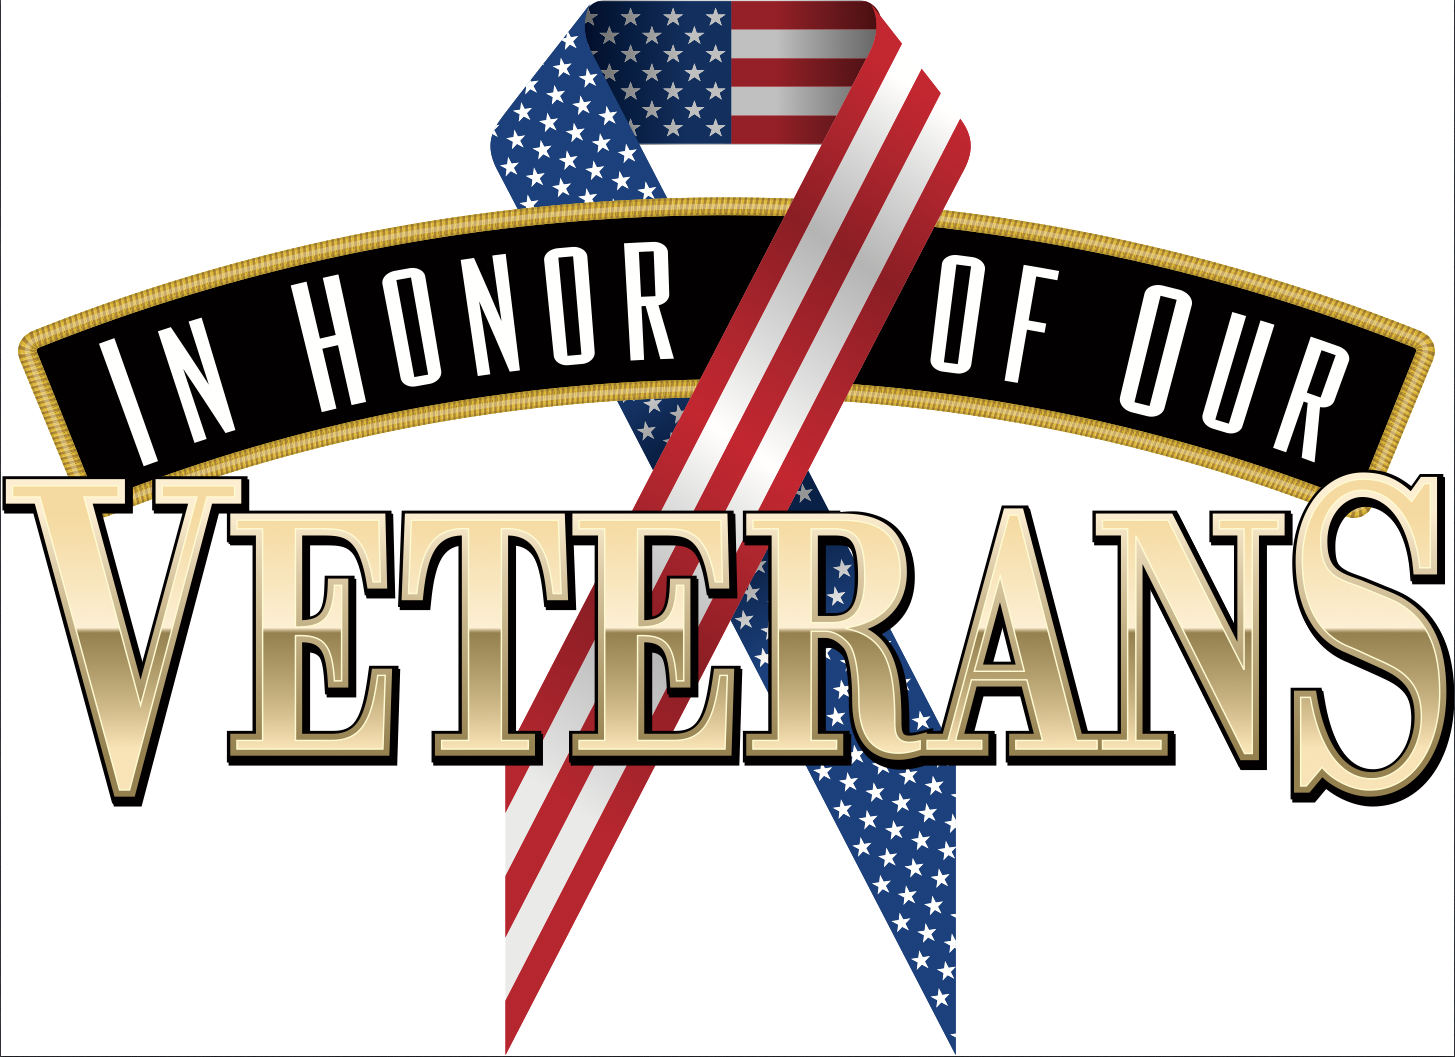 Veteran Hd Wallpapers   Hd Wallpapers